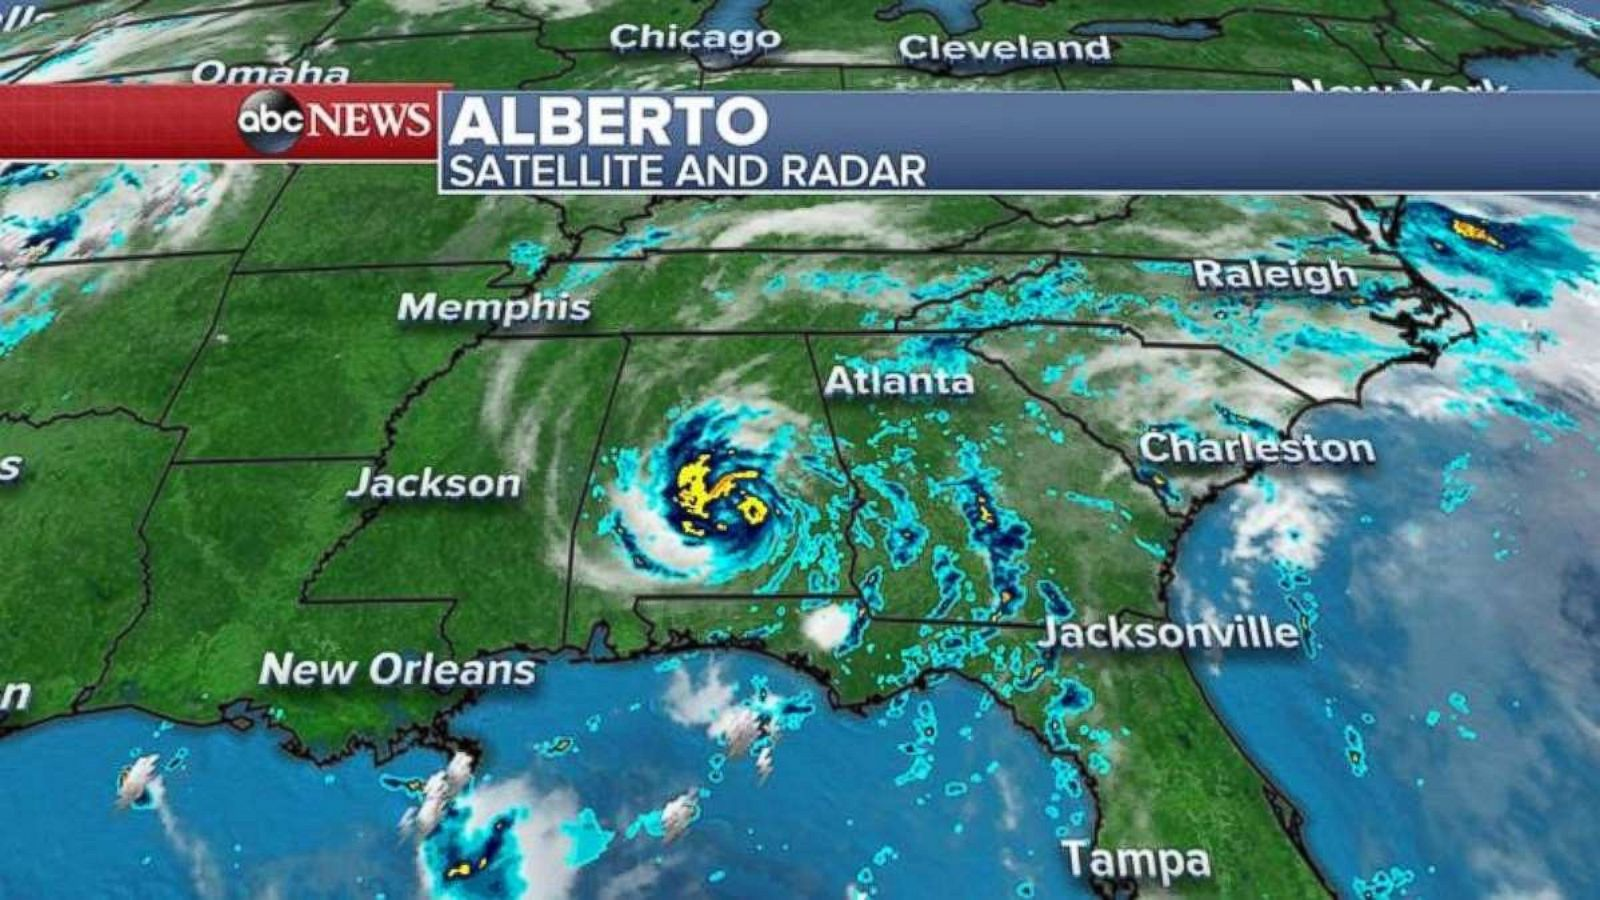 Alberto lingers amid Maryland floods and record highs in